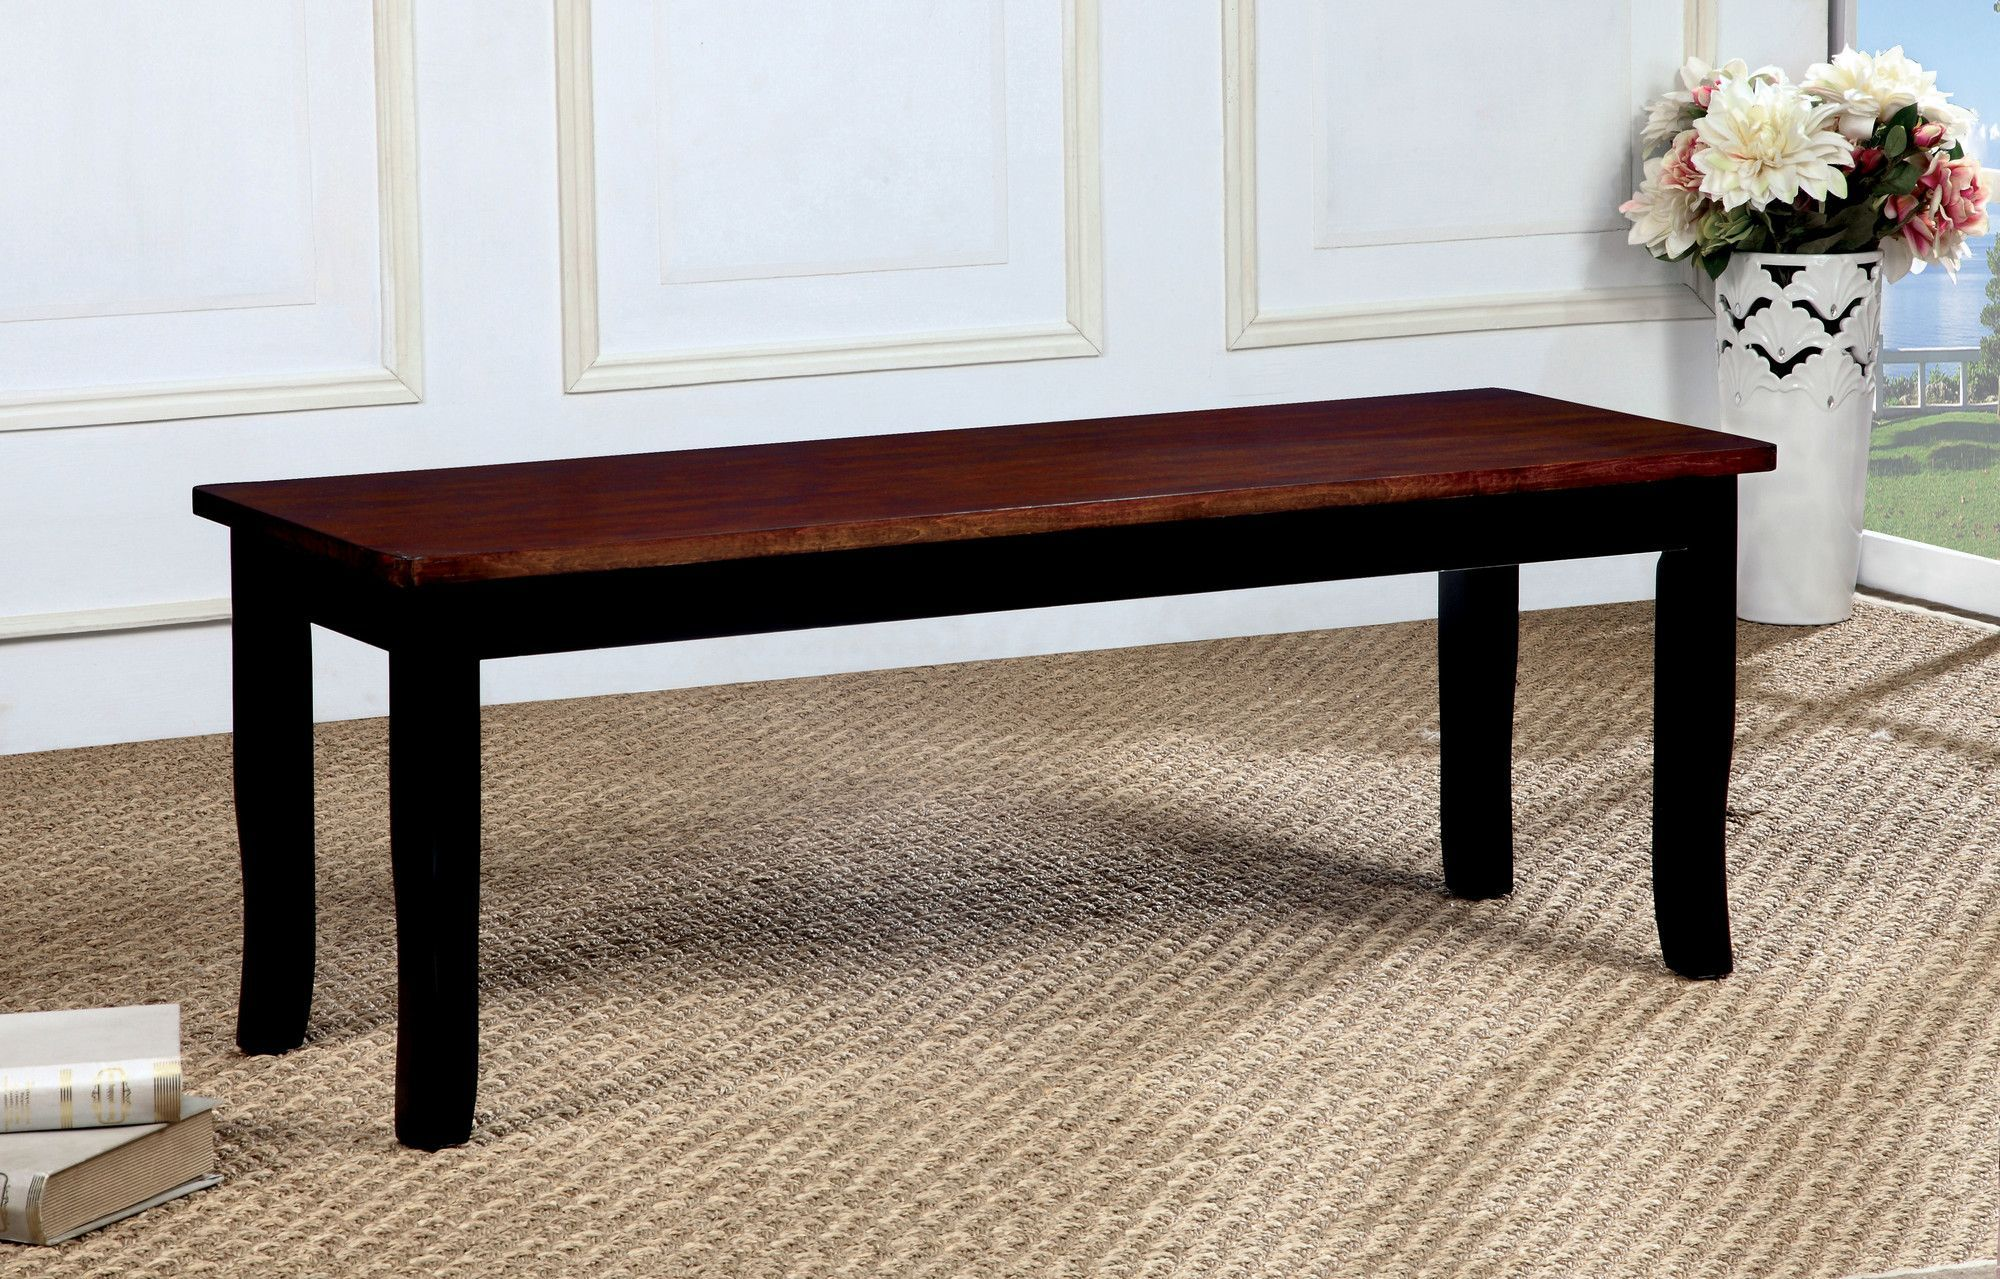 Kitchen table benches  Theo Wood Kitchen Bench  Products  Pinterest  Kitchen benches